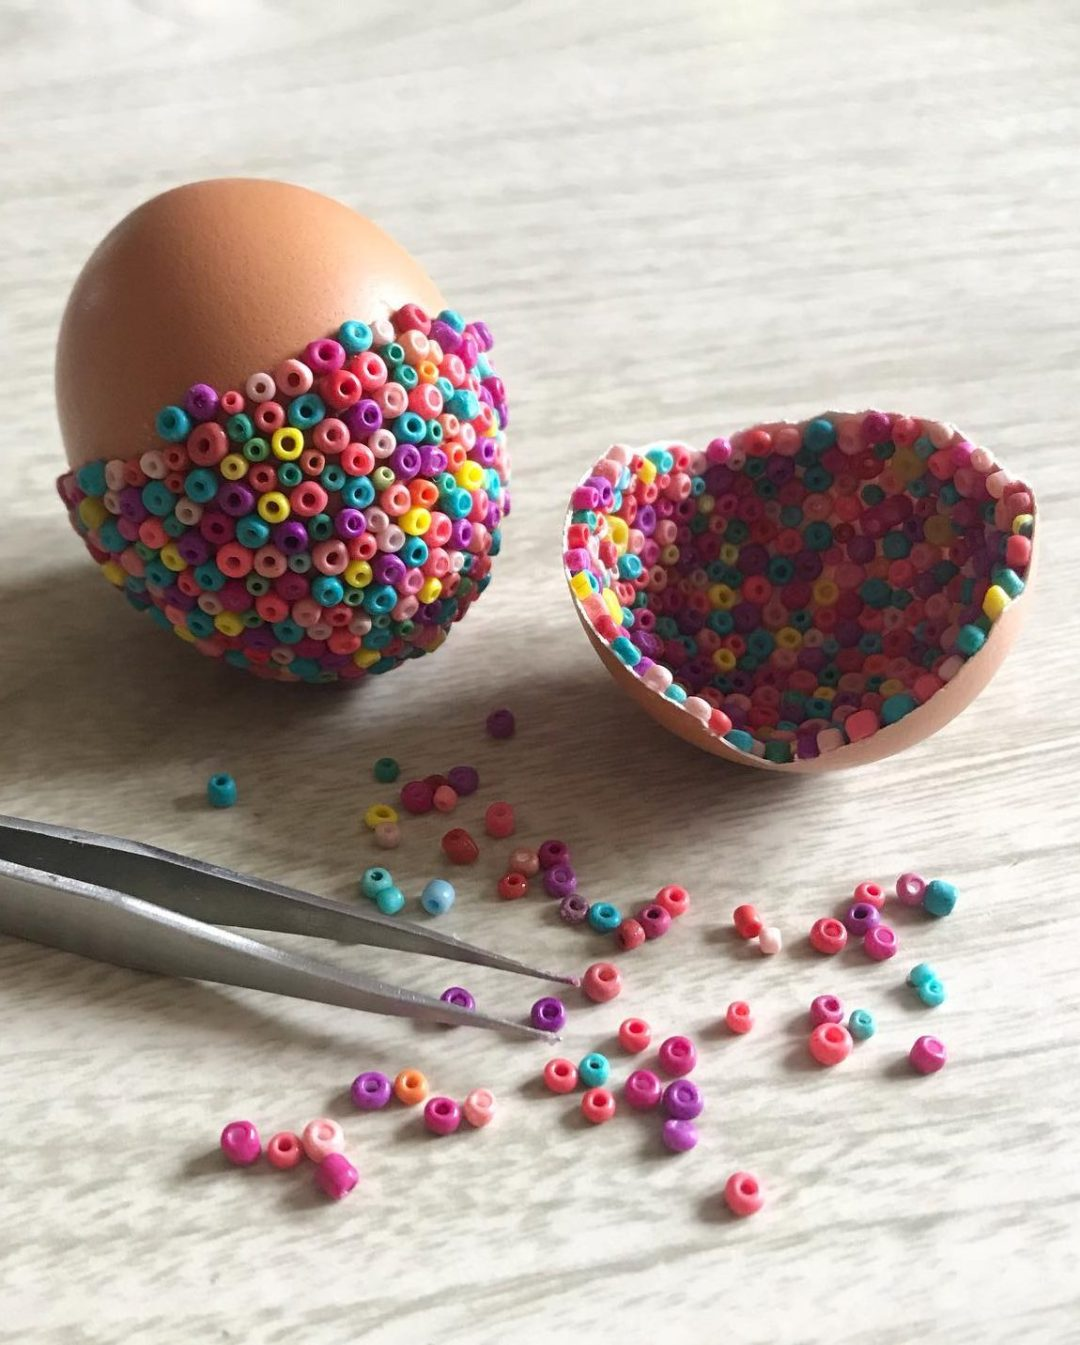 Cool and creative Easter egg decorating ideas for adults